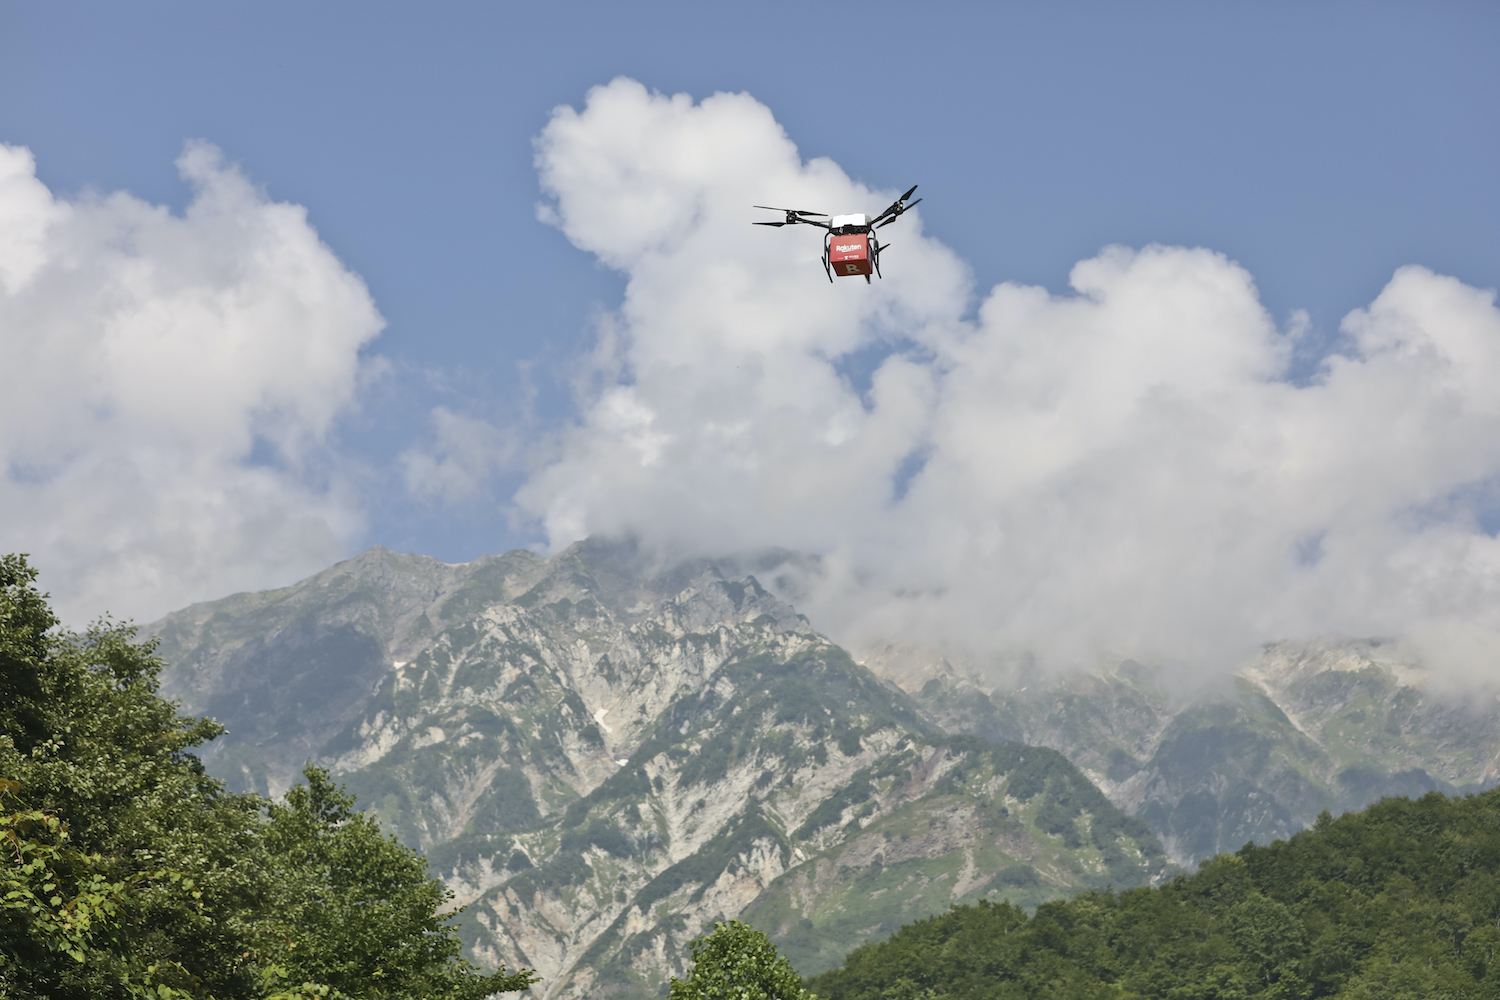 From August to September 2020, Rakuten Drone operated test deliveries between the peak of Mt. Shirouma and the valley below.